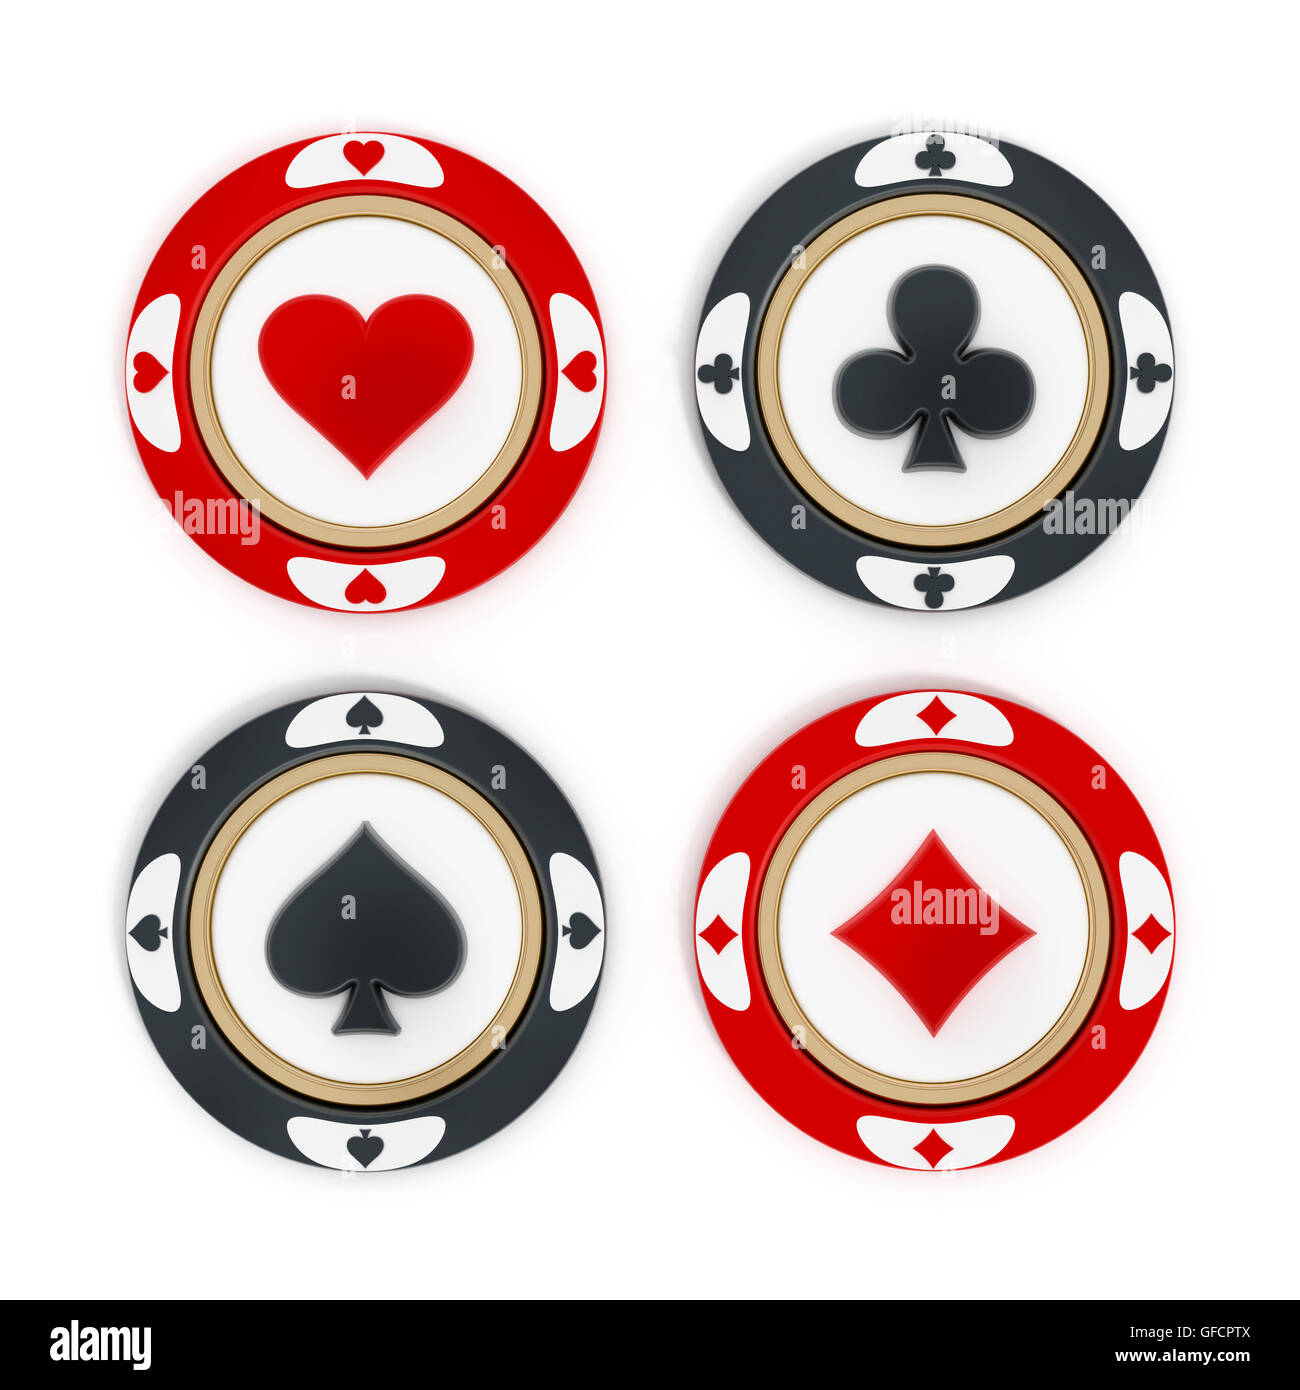 Poke Live Dcf Shapes: Casino Chips With Hearts, Spades, Diamonds And Clubs